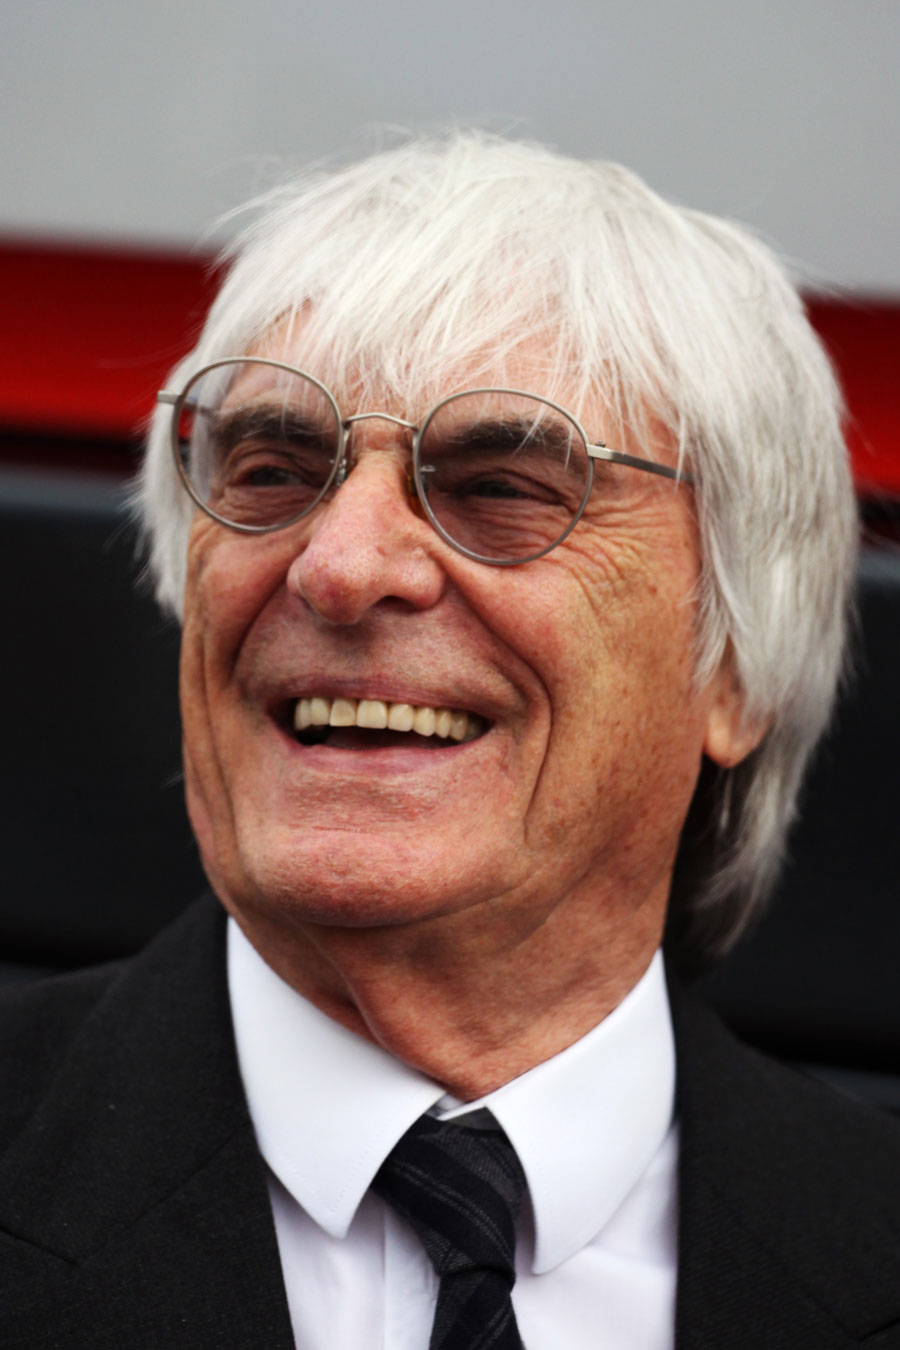 Bernie Ecclestone in the paddock between meetings on Friday